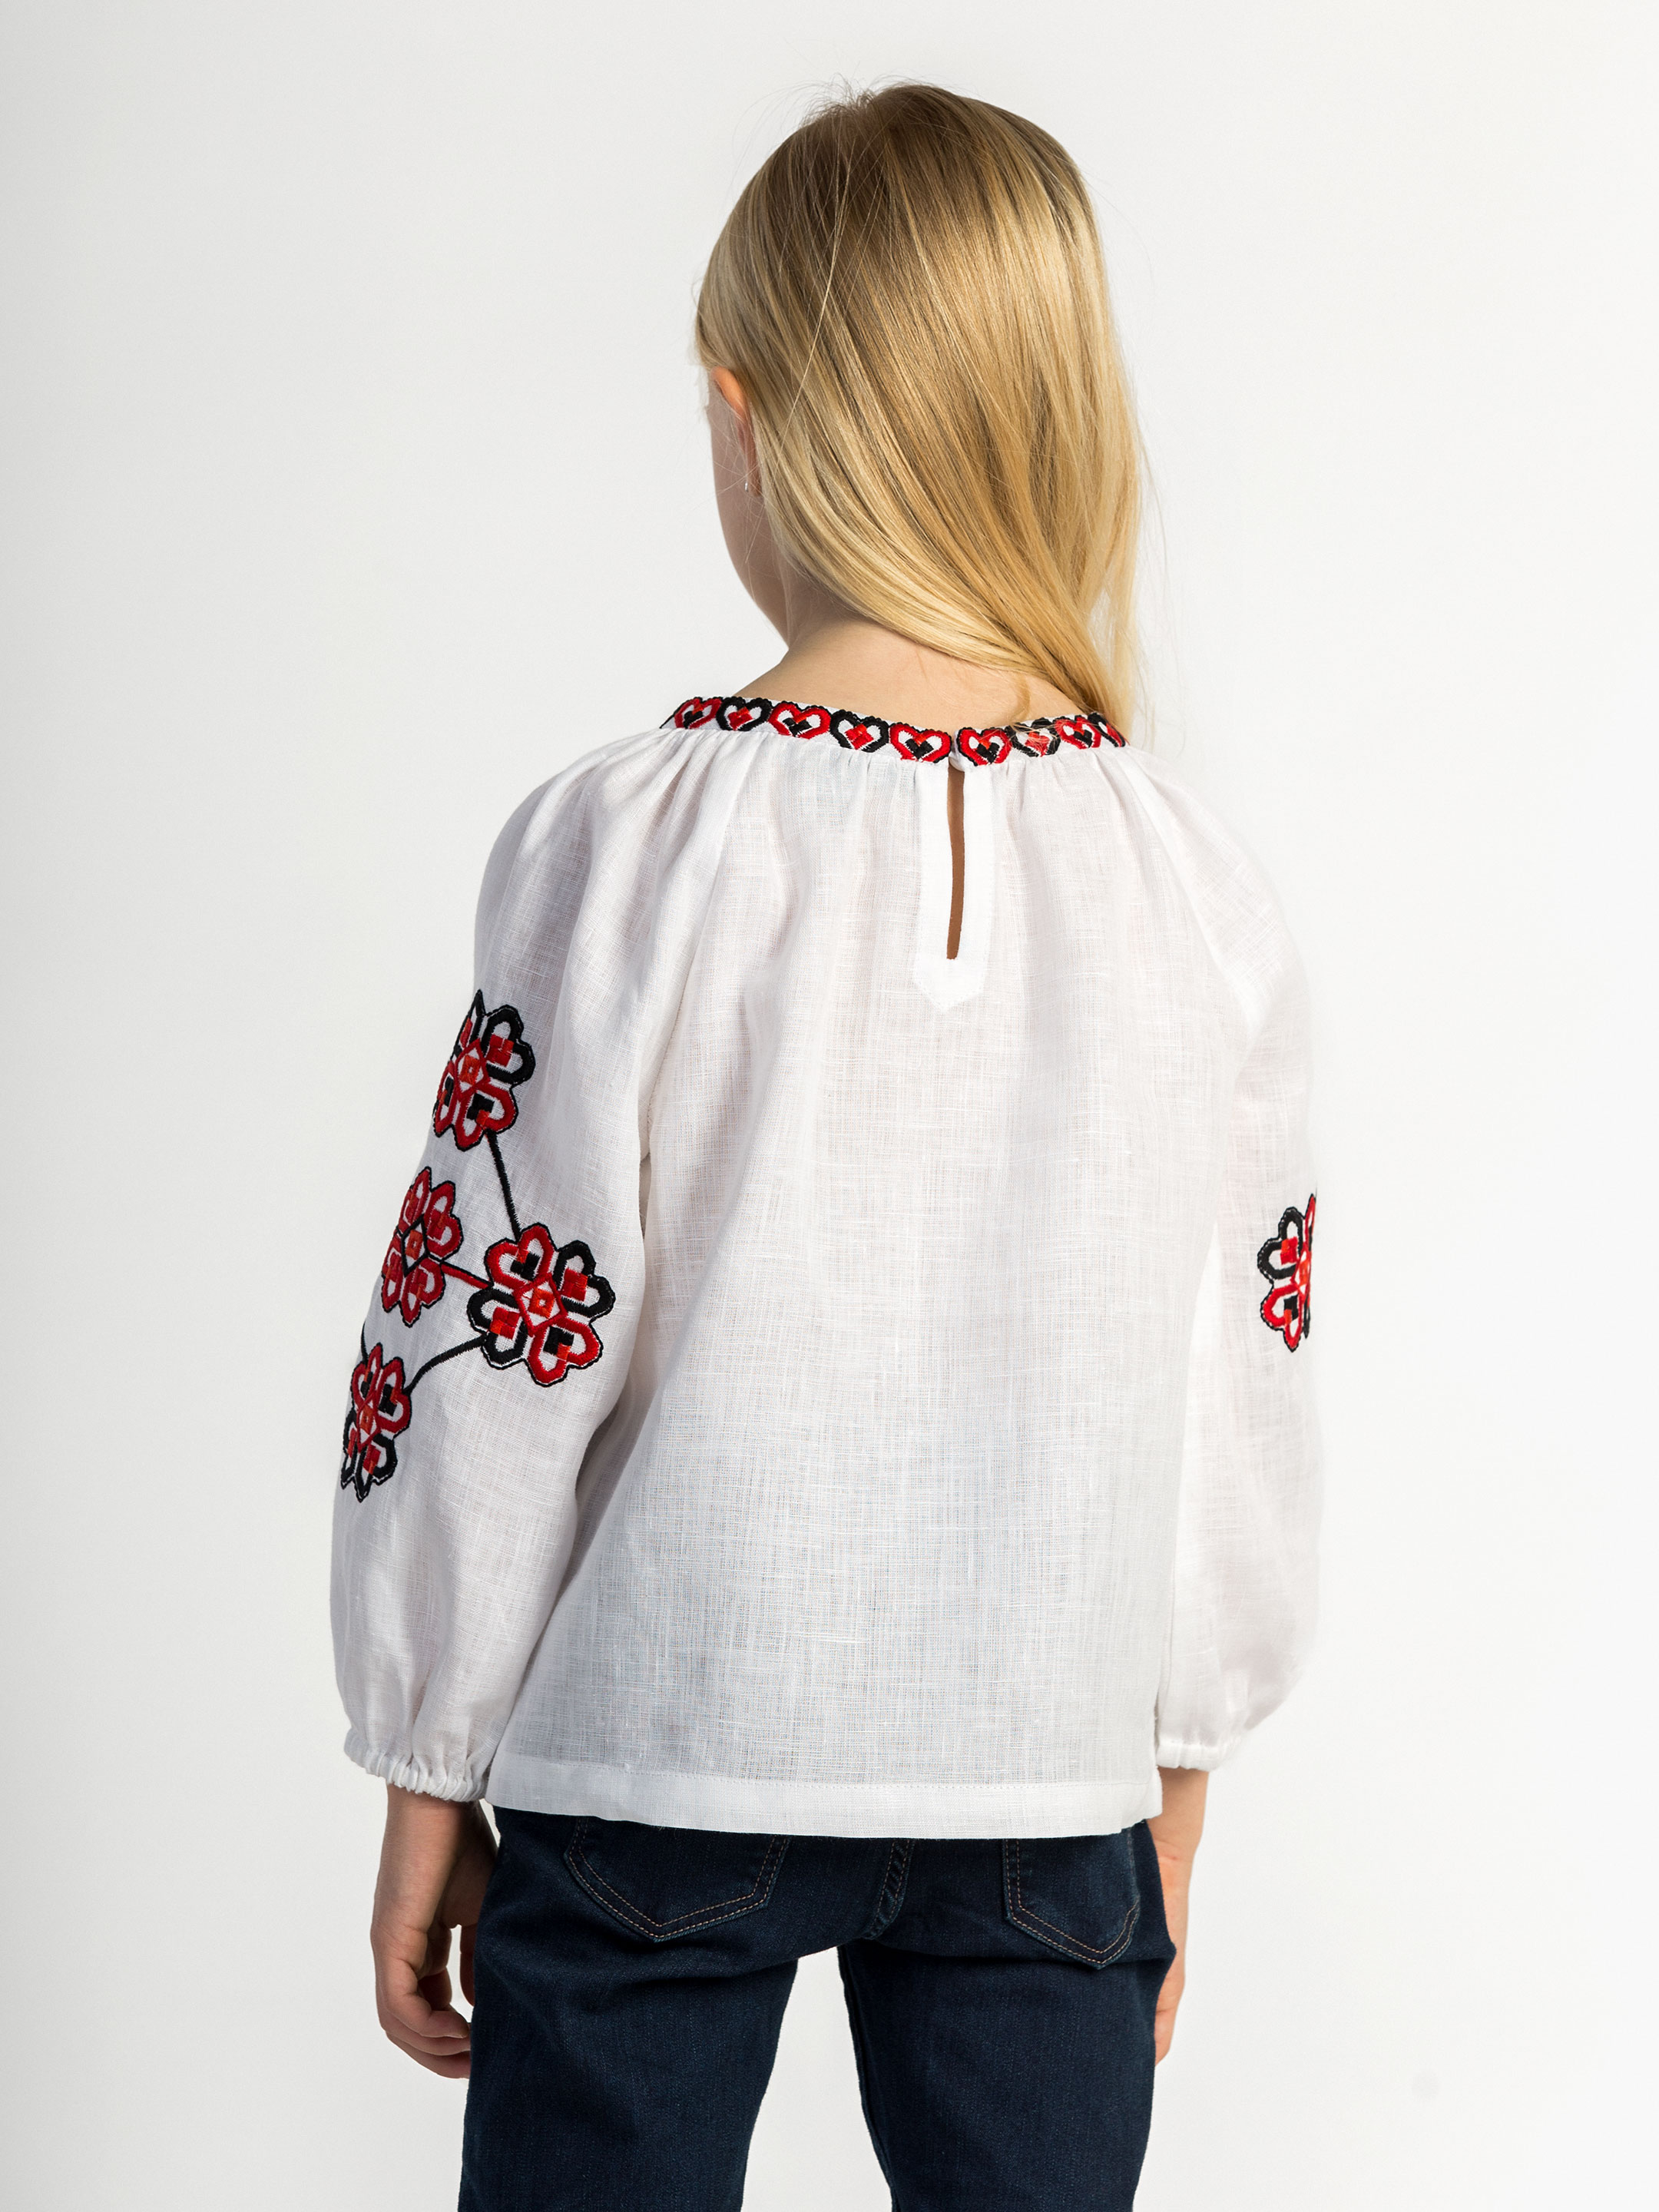 Embroidered shirt for girls Red Heart 5